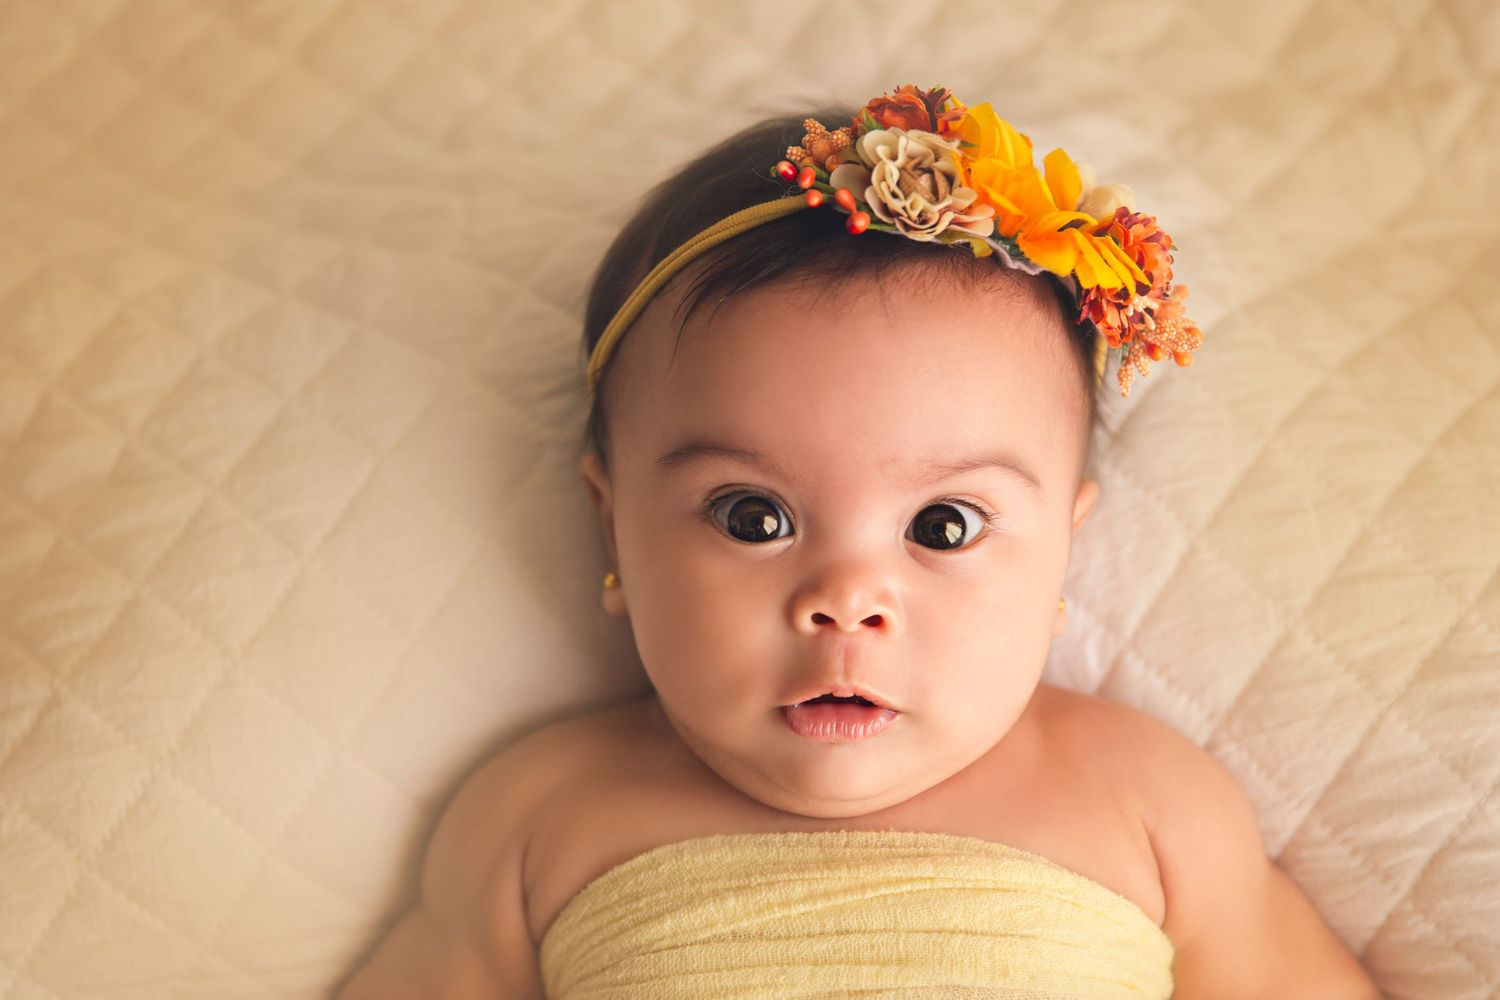 baby girl close up with floral headband yellow